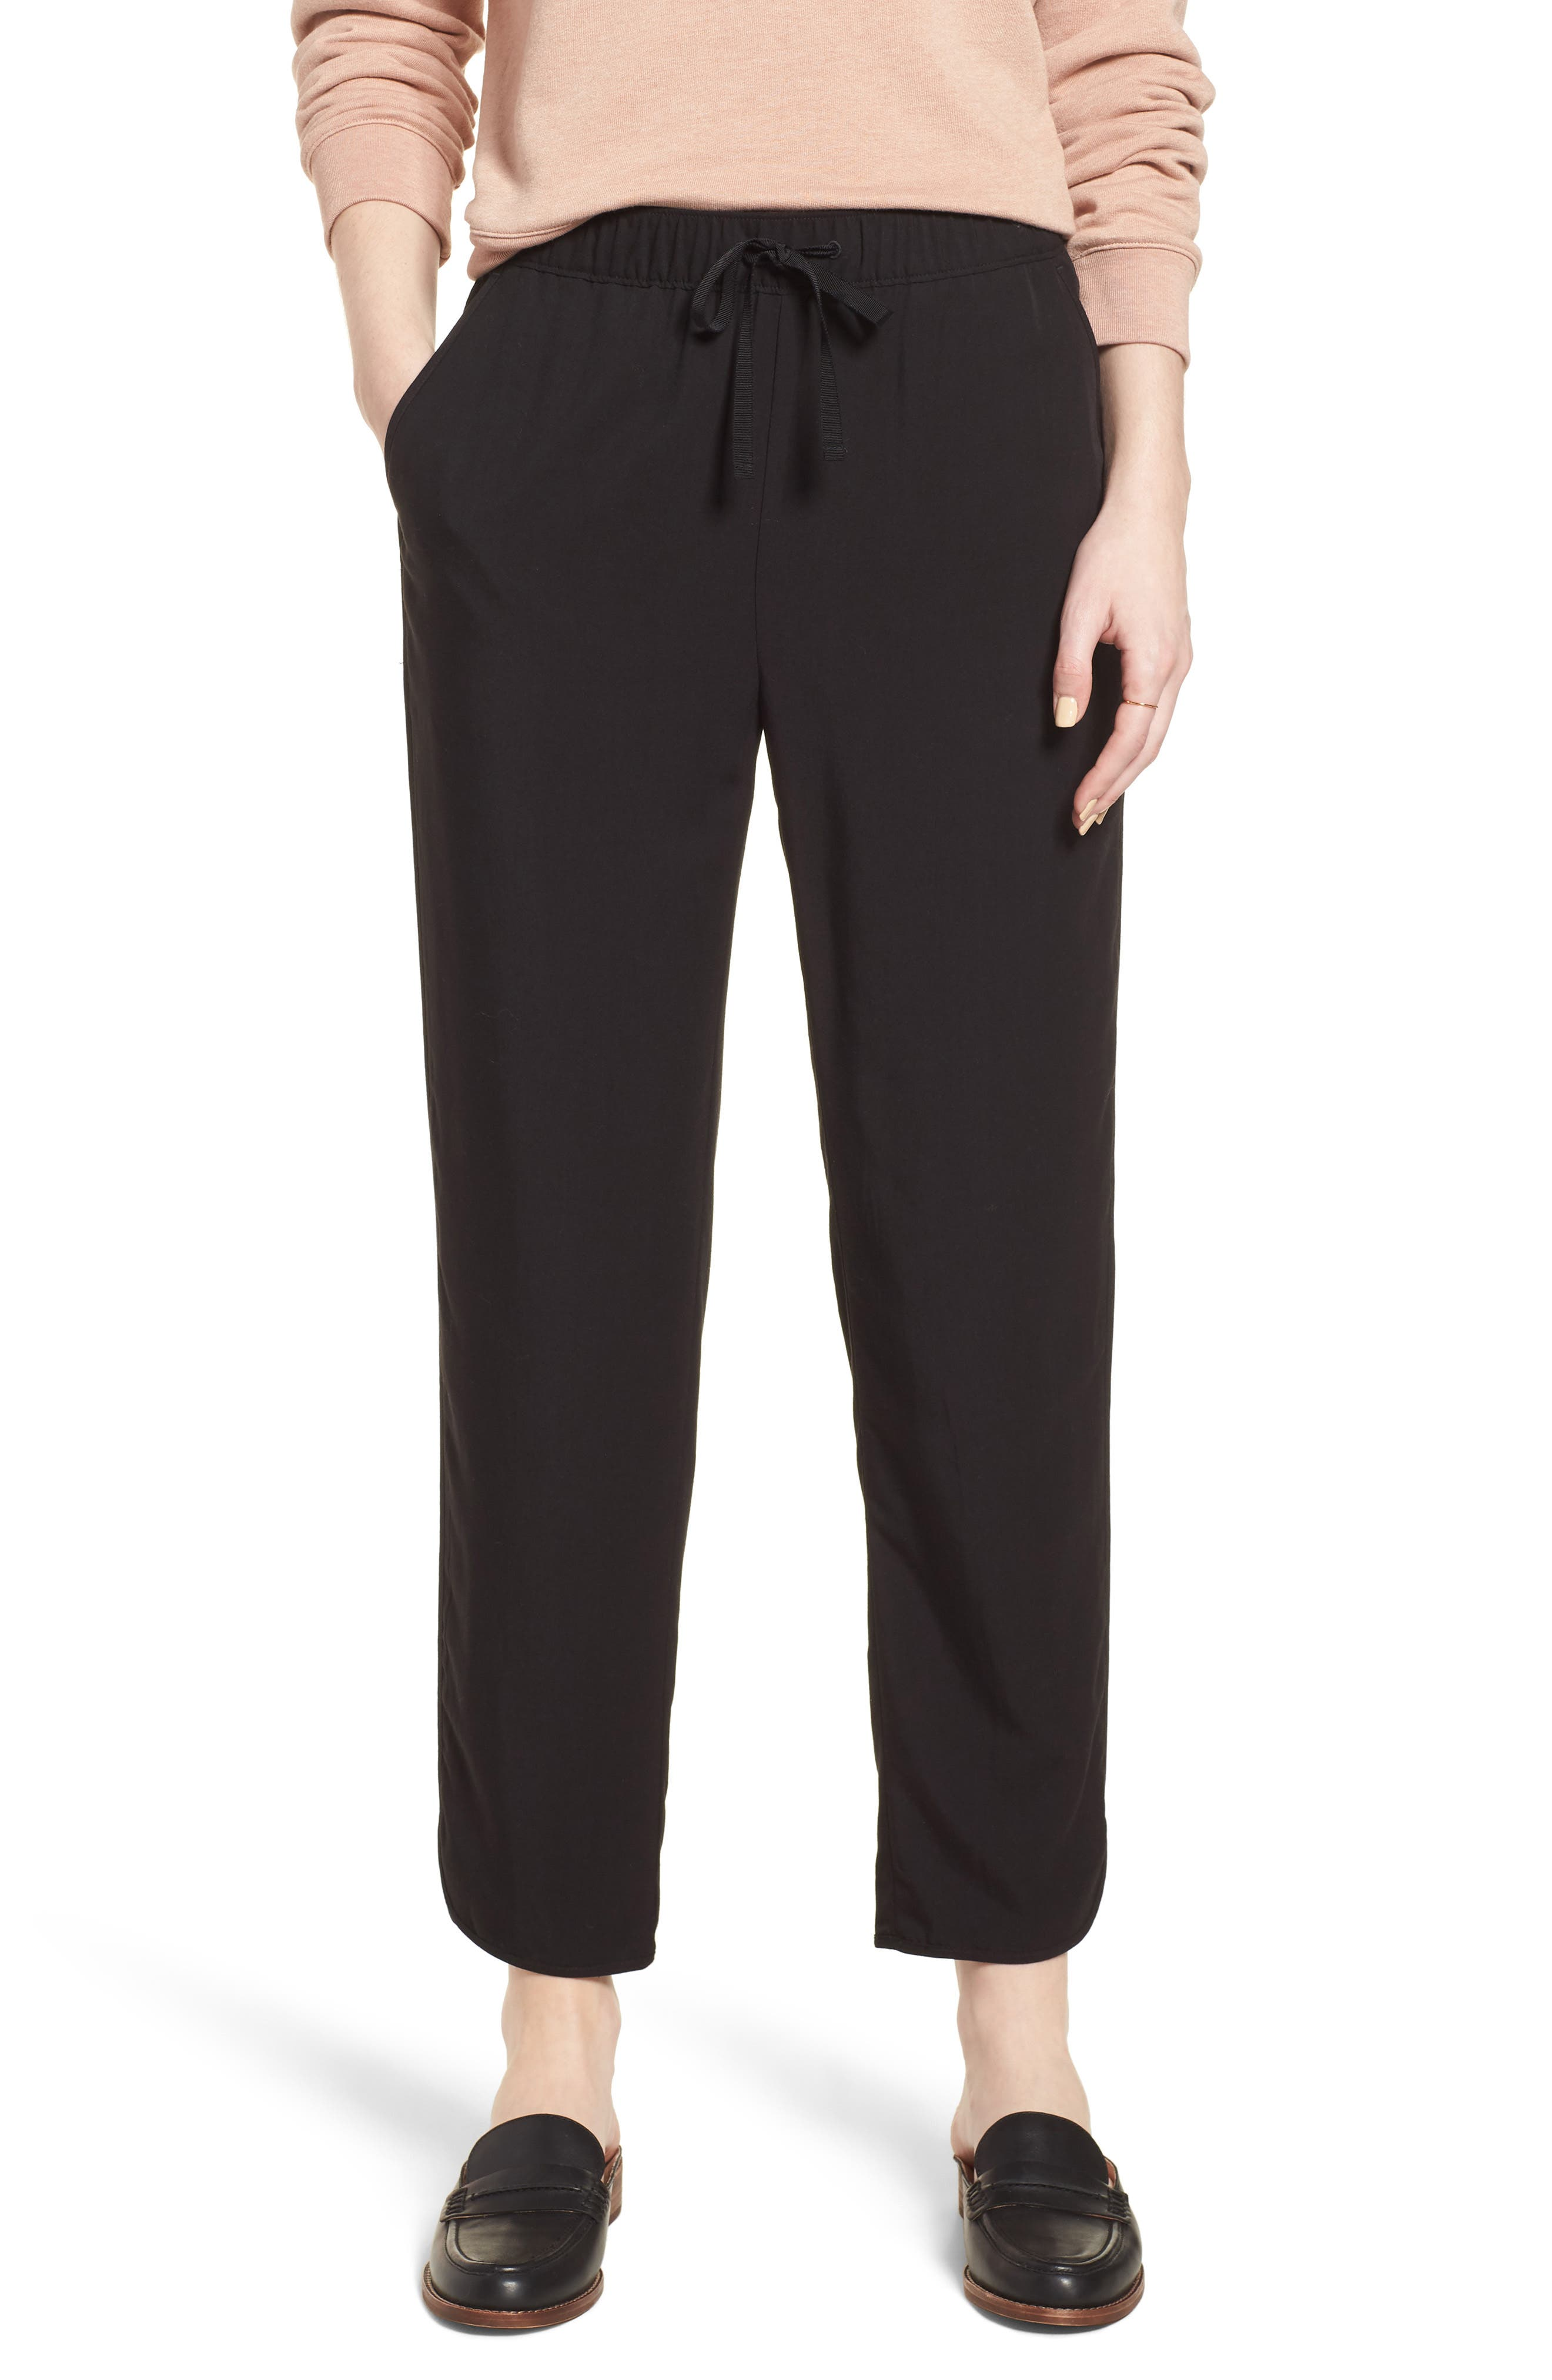 MADEWELL,                             Drawstring Track Trousers,                             Main thumbnail 1, color,                             001